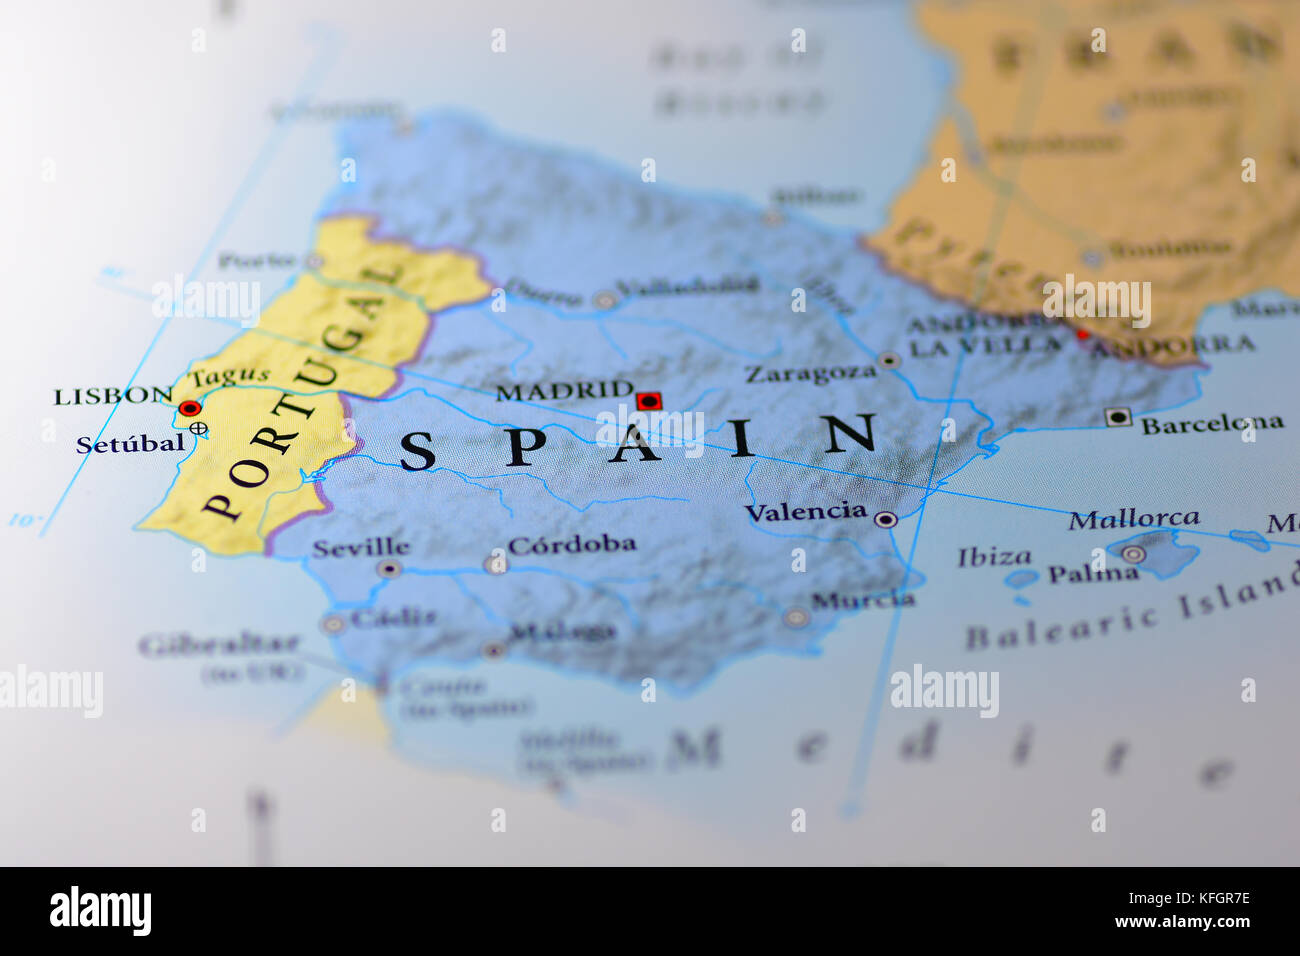 Close up of a Map of Spain Stock Photo: 164482626 - Alamy